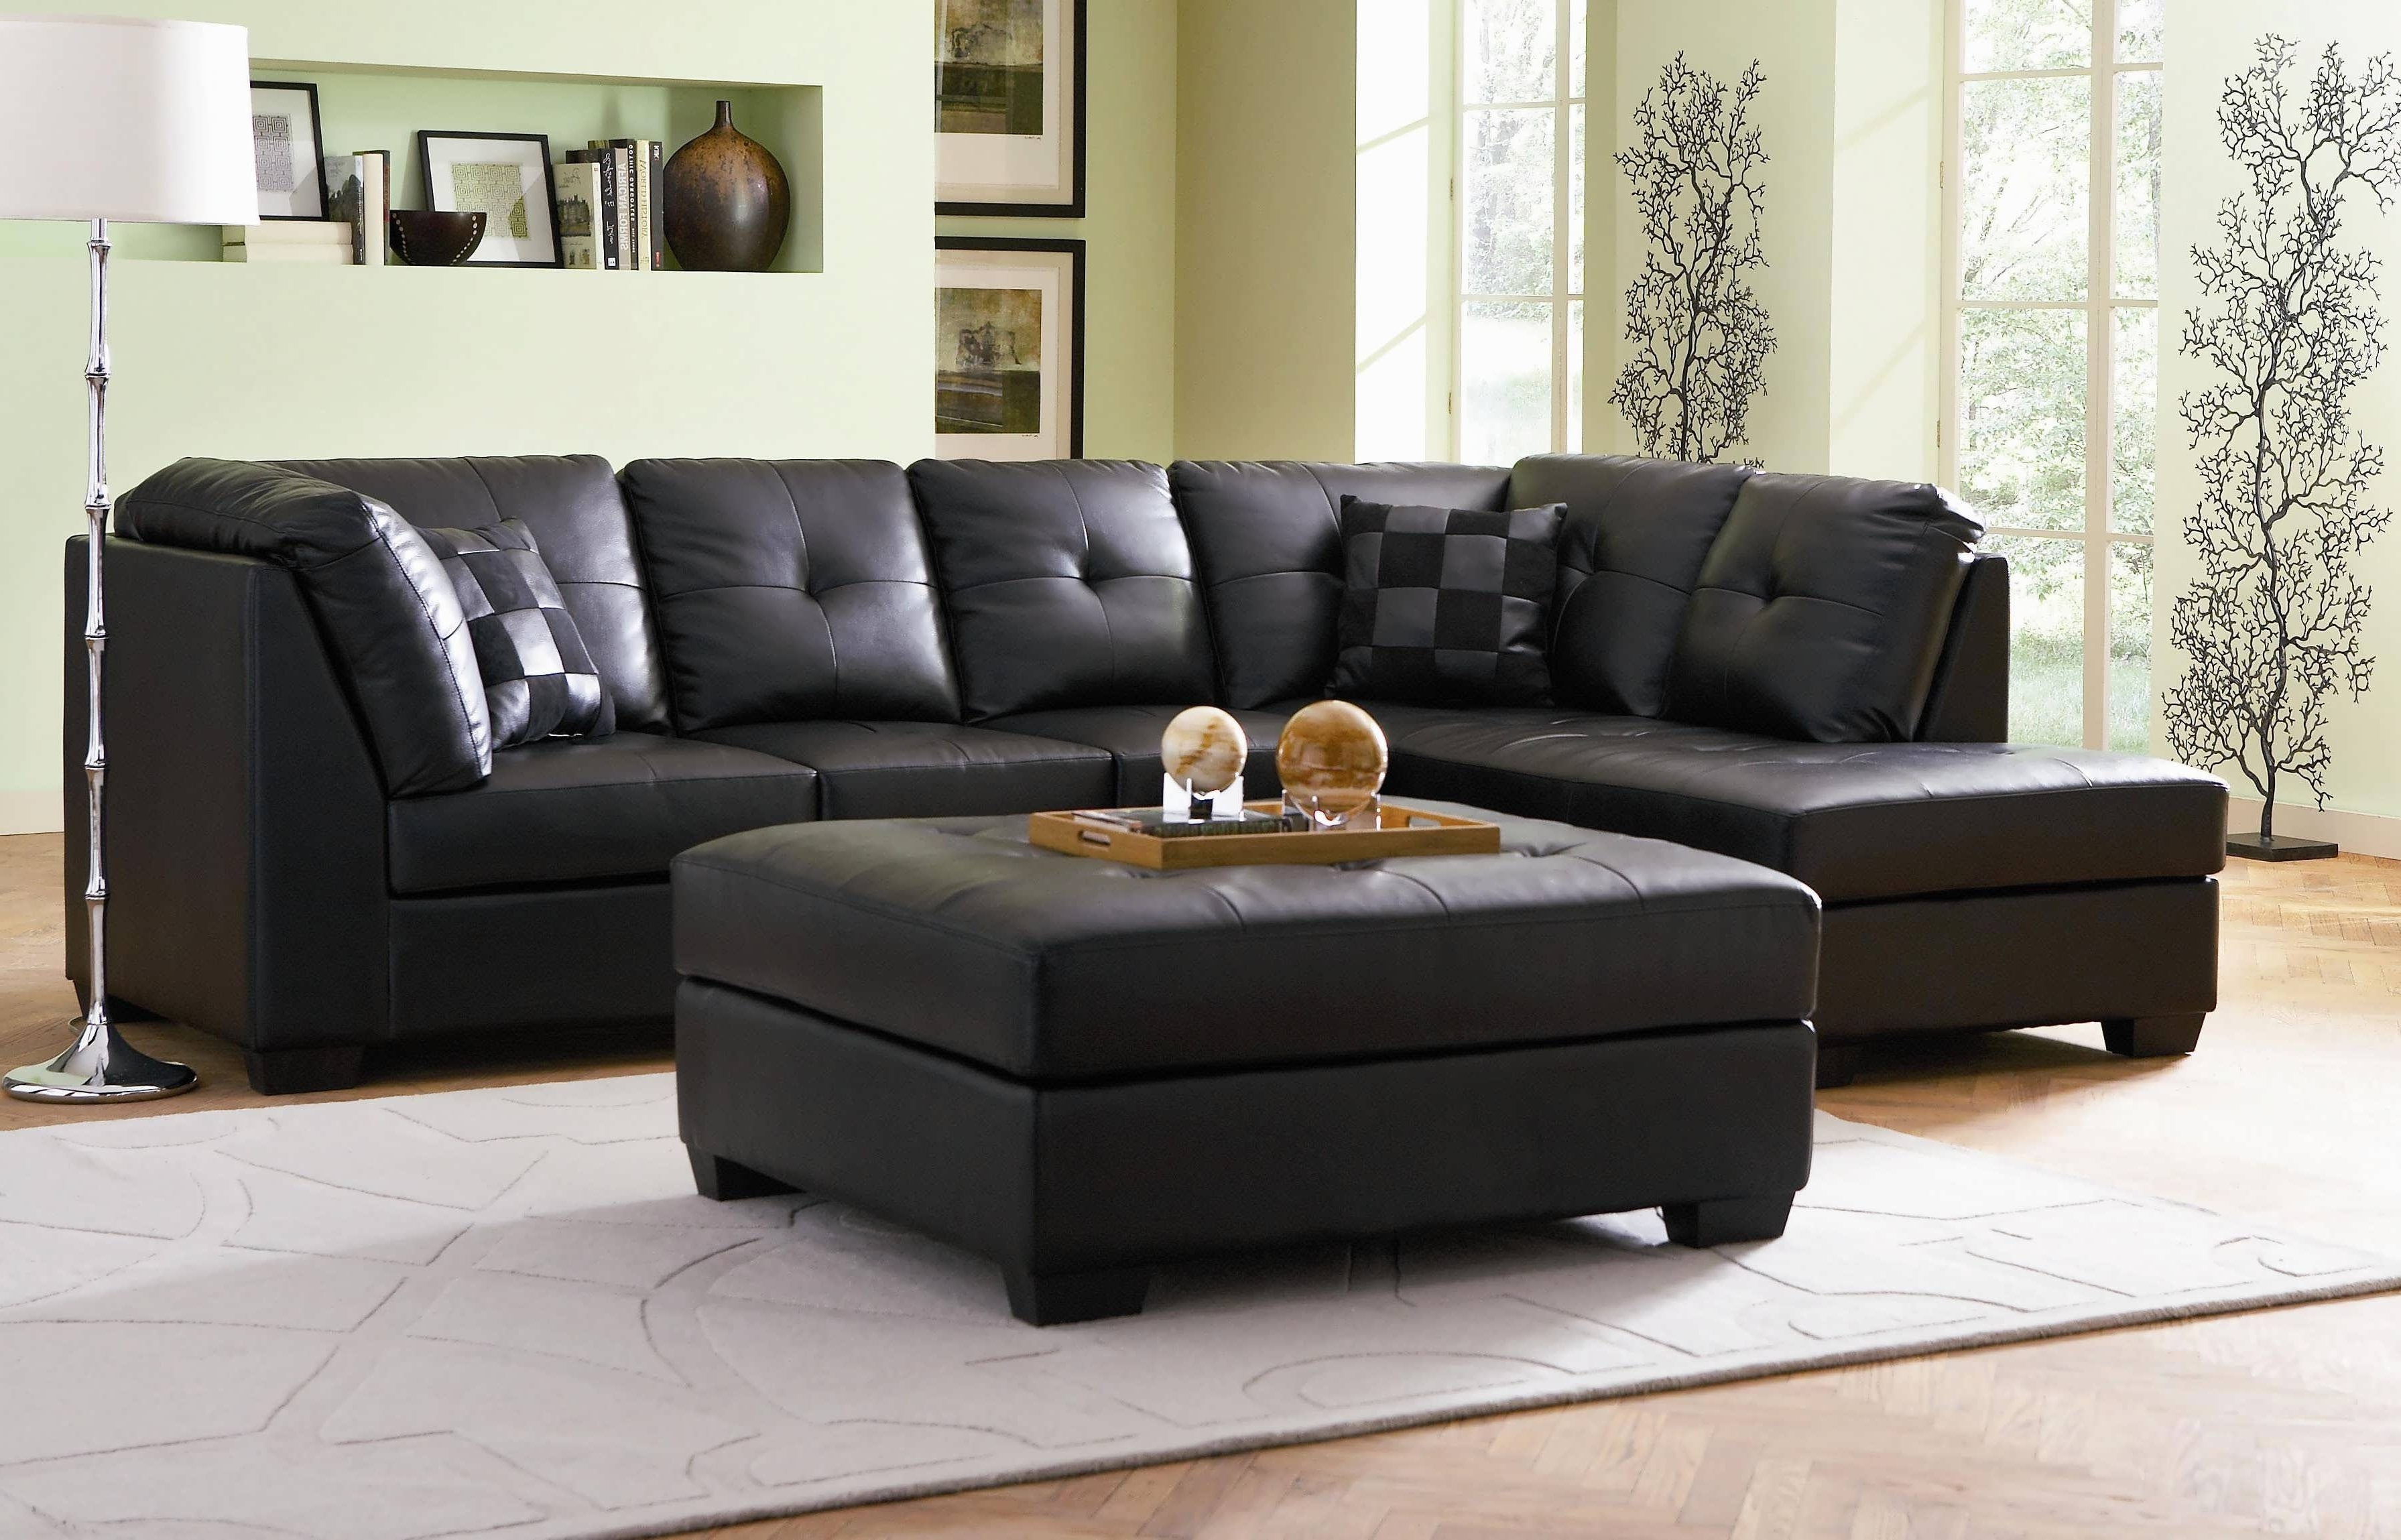 Livingroom : Ideas For Small Living Room Space Sofa Set Designs For Latest Philippines Sectional Sofas (View 6 of 20)